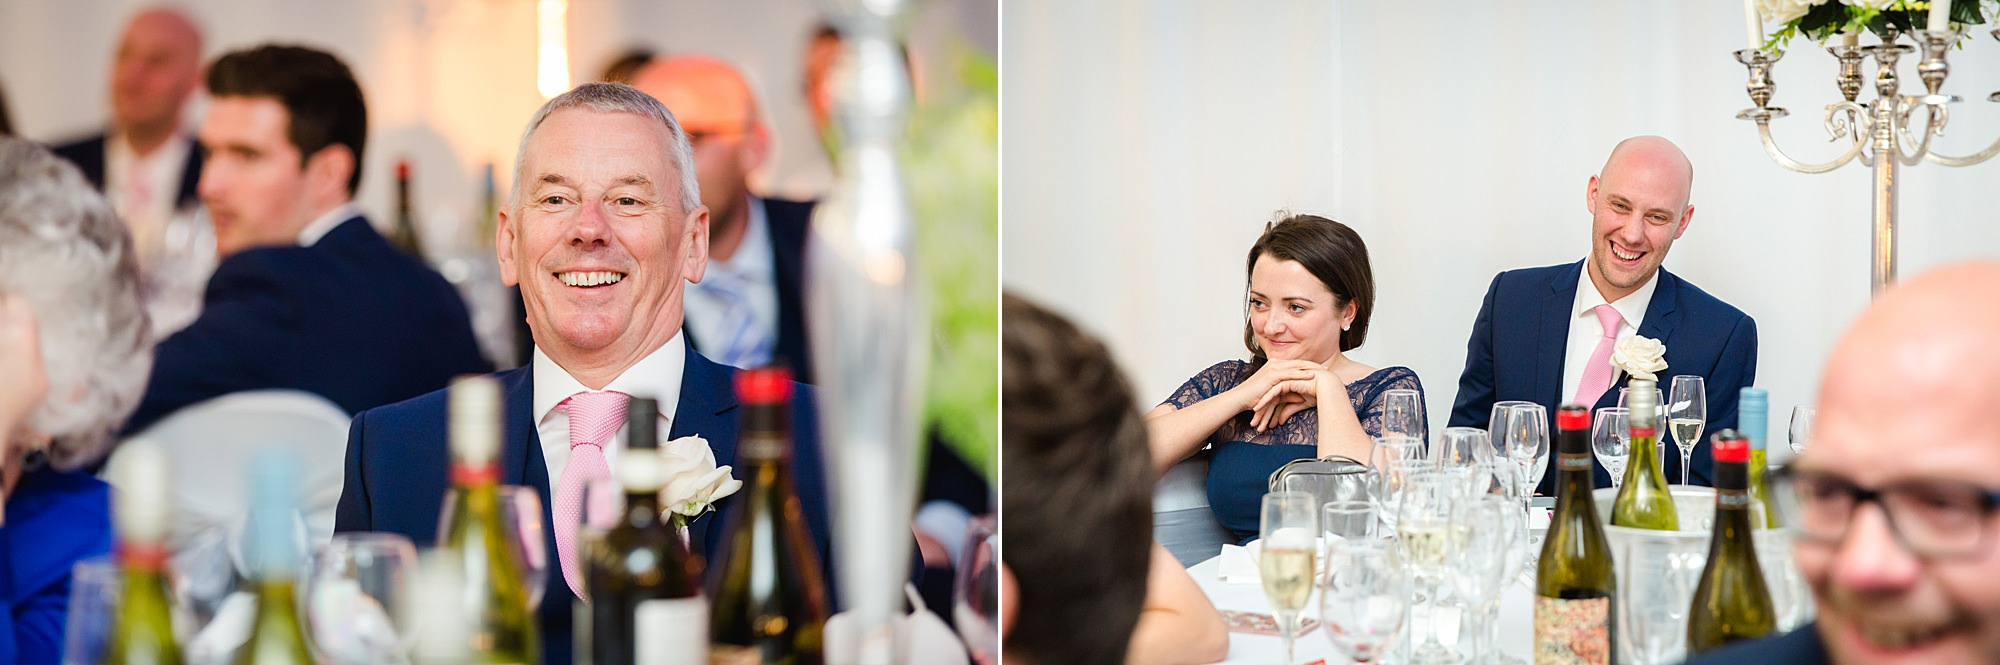 Bank of England Sports Centre wedding guests laugh during speeches